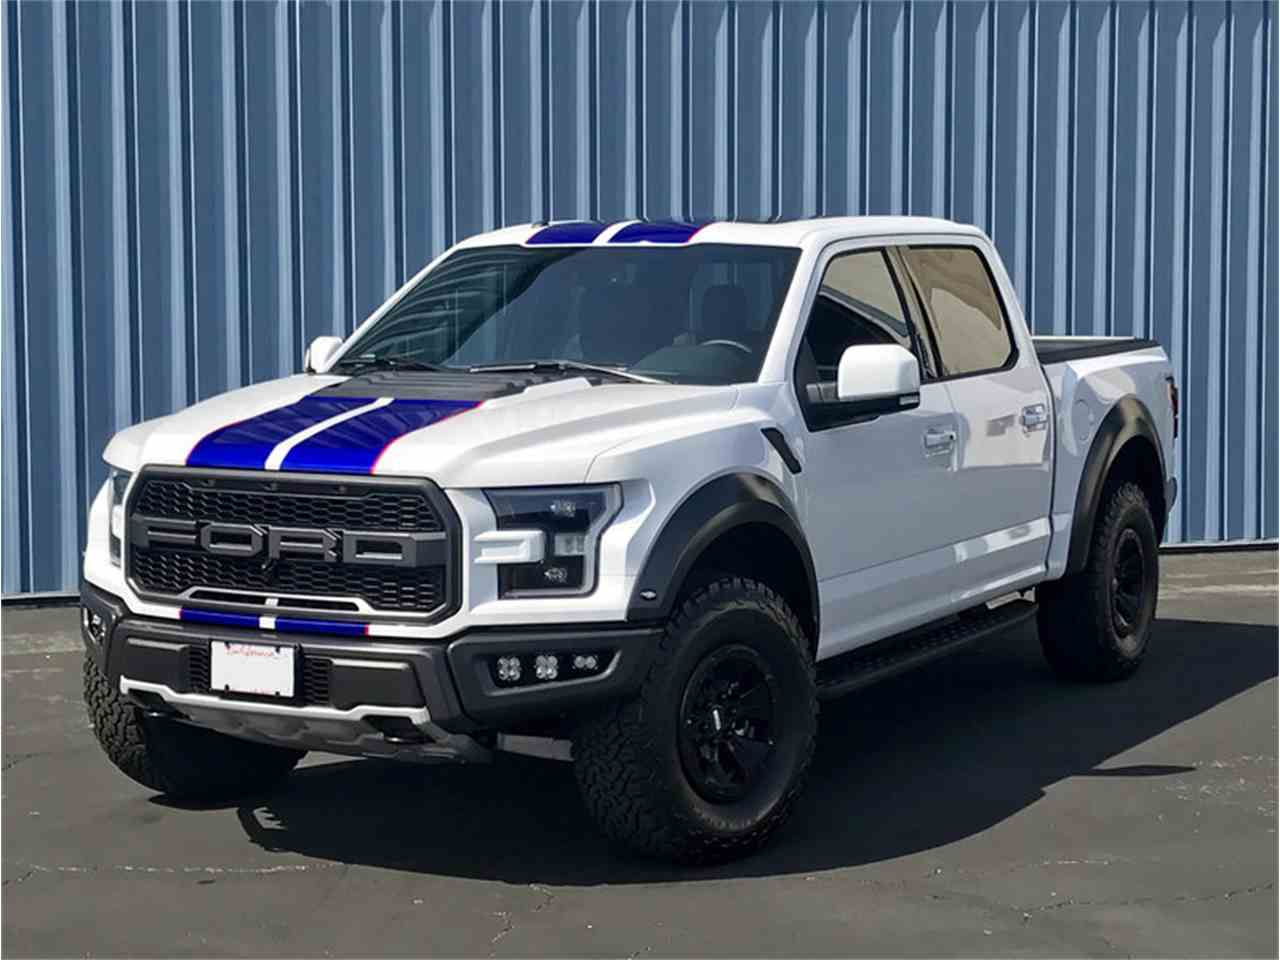 Ford Raptor For Sale >> 2017 Ford Raptor For Sale Classiccars Com Cc 1028469